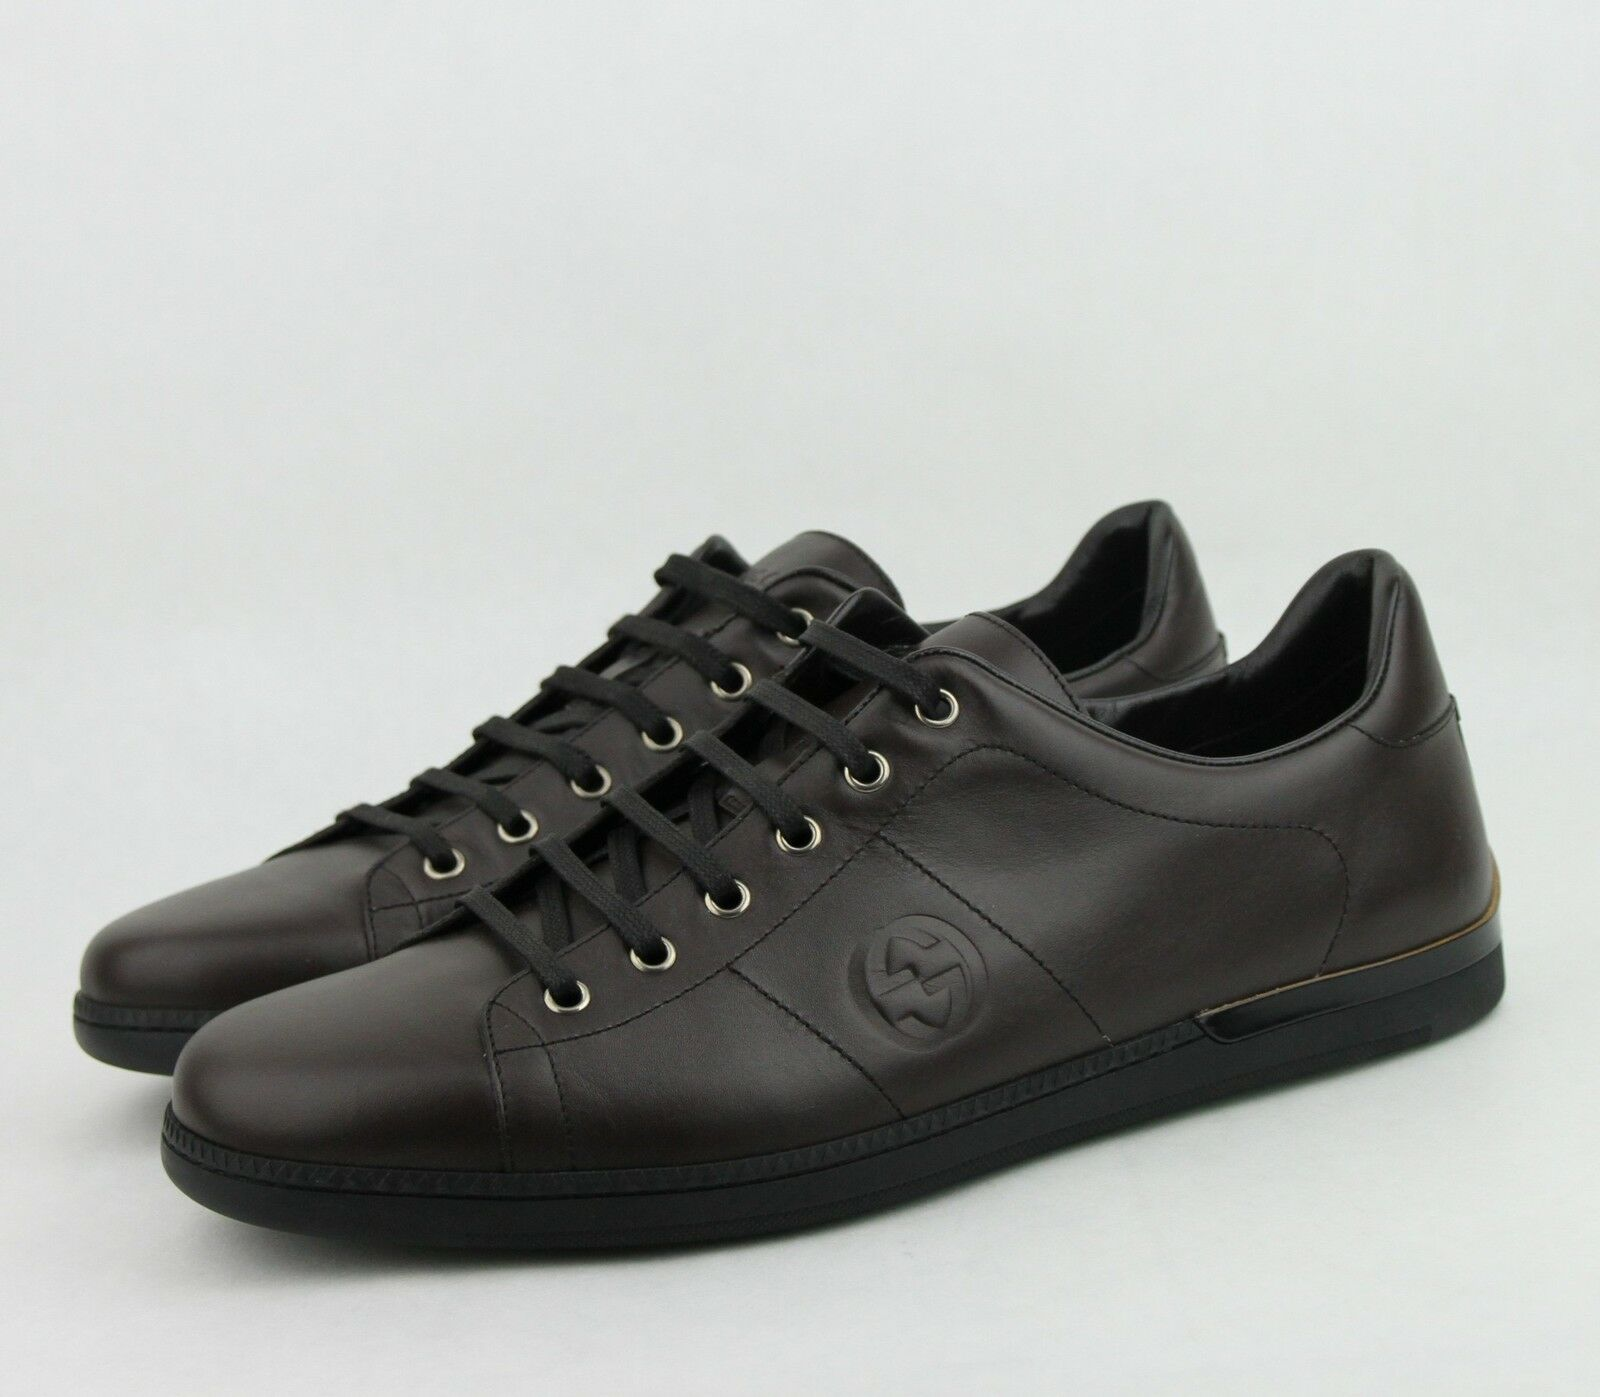 $620 New Gucci Men's Leather Lace-up Cocoa Sneakers Shoes Brown 329843 2140 1